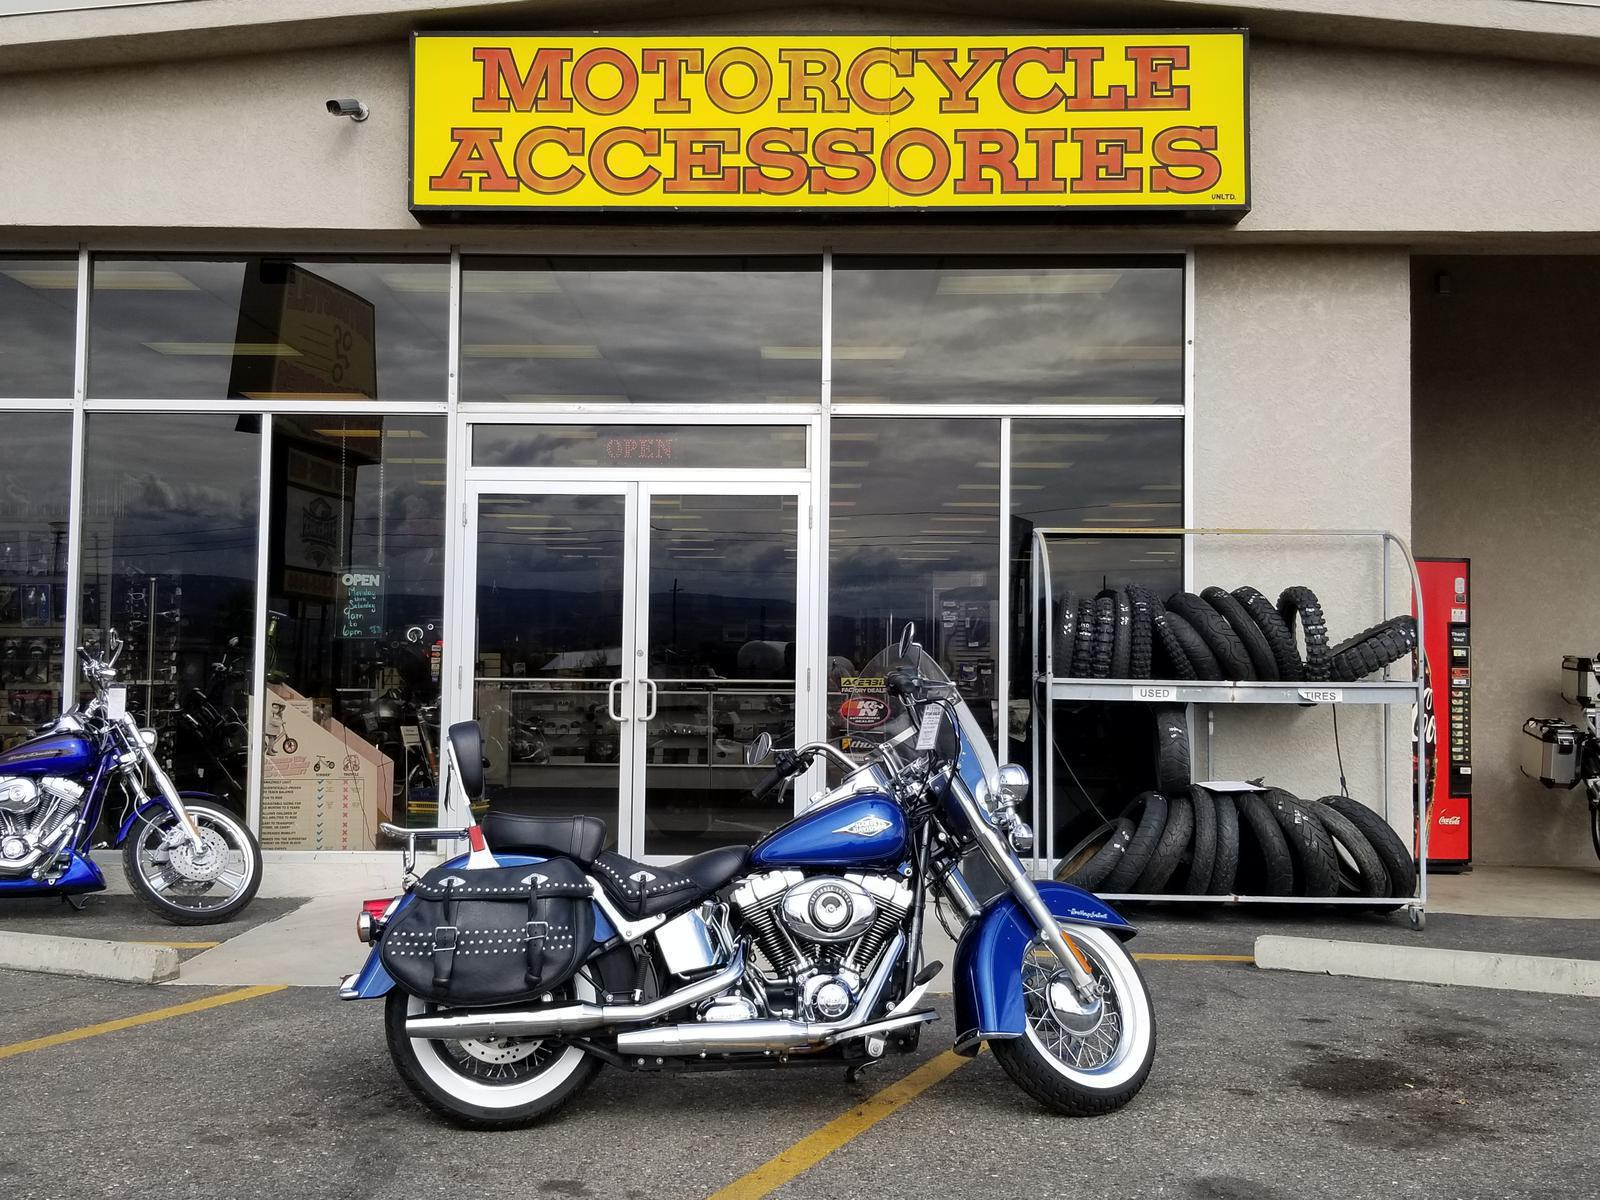 2015 Harley Davidson Heritage Softail For Sale In Grand Junction Co Motorcycle Accessories 970 242 9495